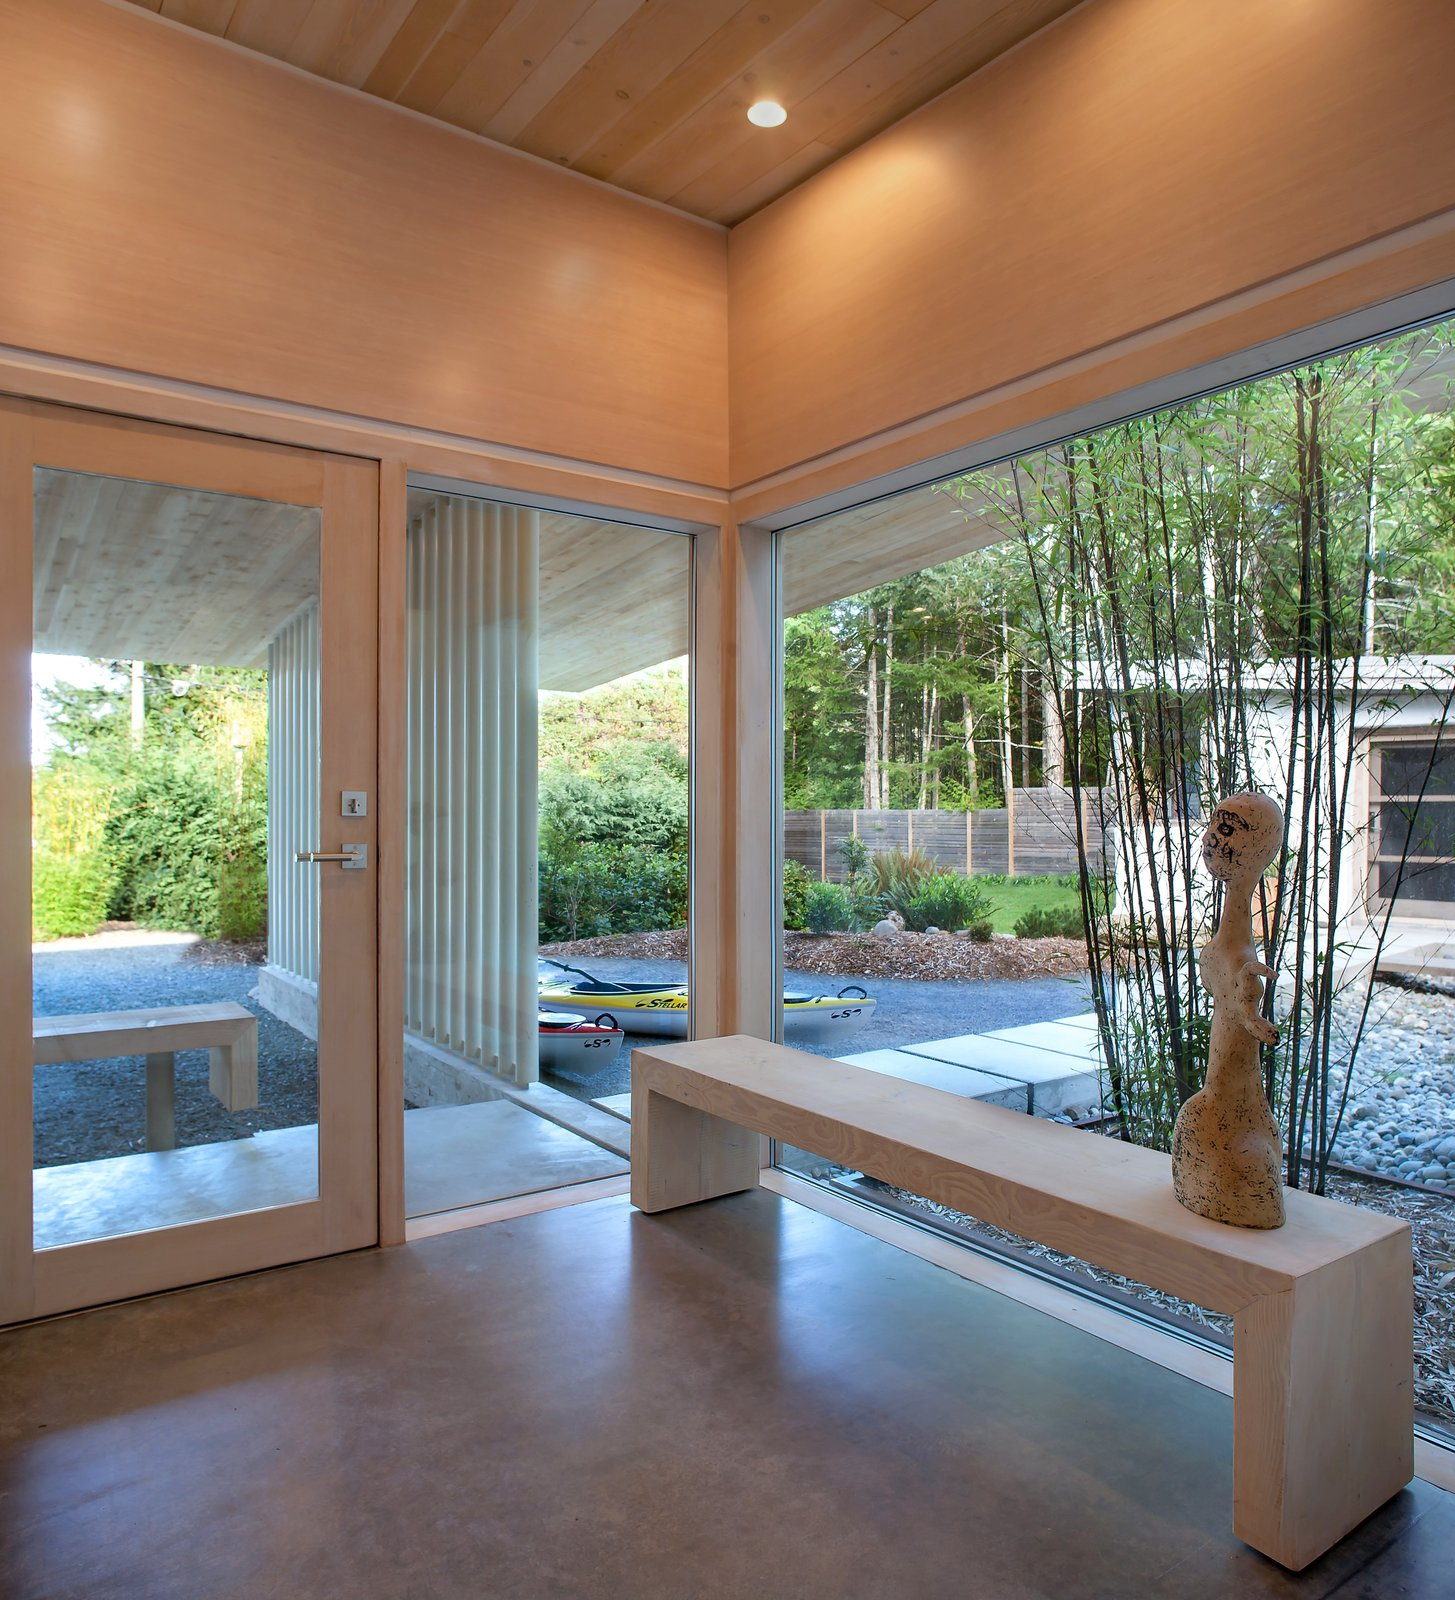 Polished concrete with radiant heating comprise the cabin's interior floors, and its ceilings are made of Douglas fir. Jones designed the custom windows, which were fabricated by contractor Ian Maclean.